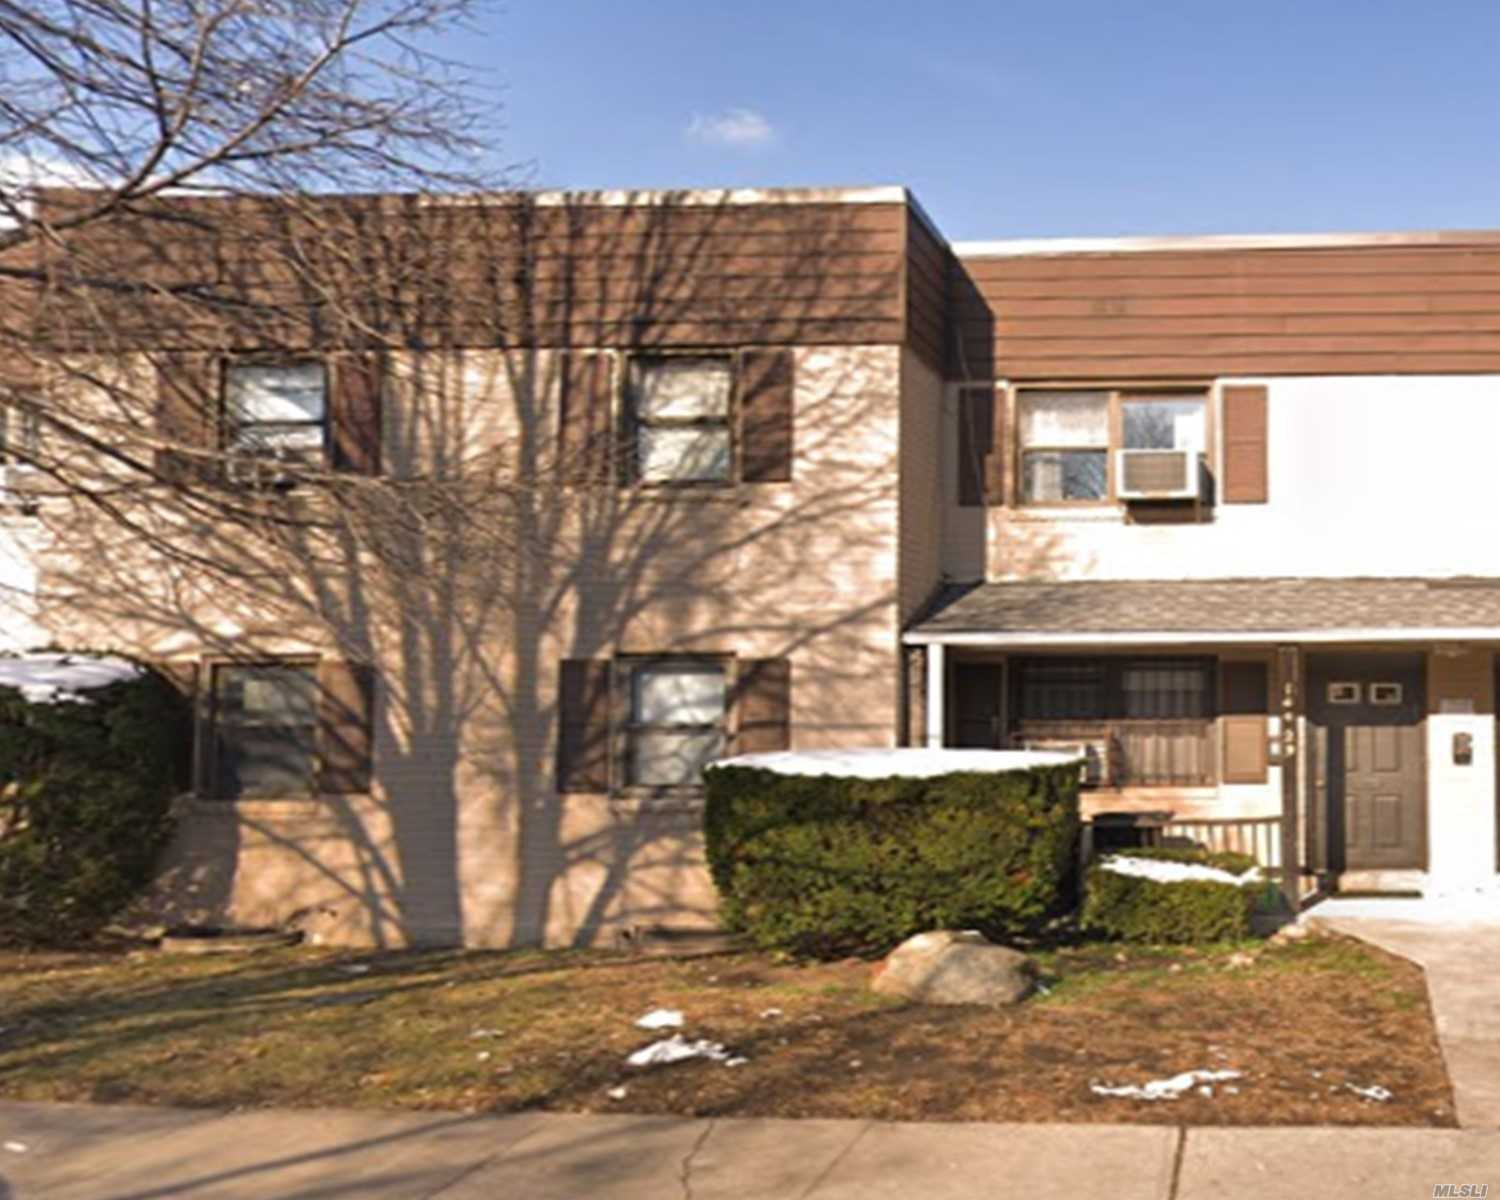 Lovely 2 Bedrooms, 1 Full Bath Co-Op In The Heart Of Kew Garden Hills. Steps To Shopping, Transportation And Houses Of Worship. Low Maintenance- Investor Friendly!!